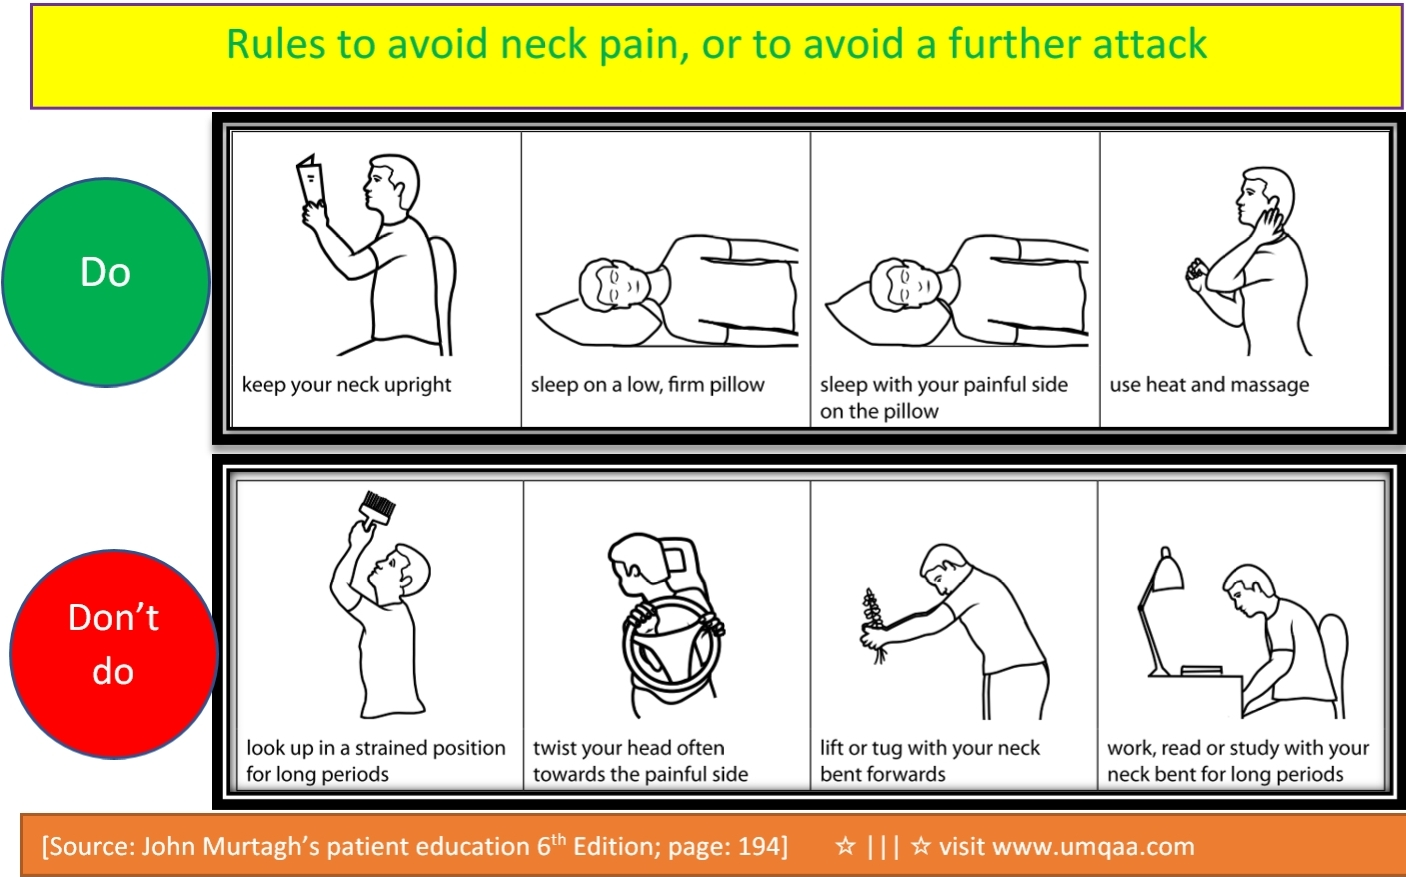 What to do in Neck pain, don't do?